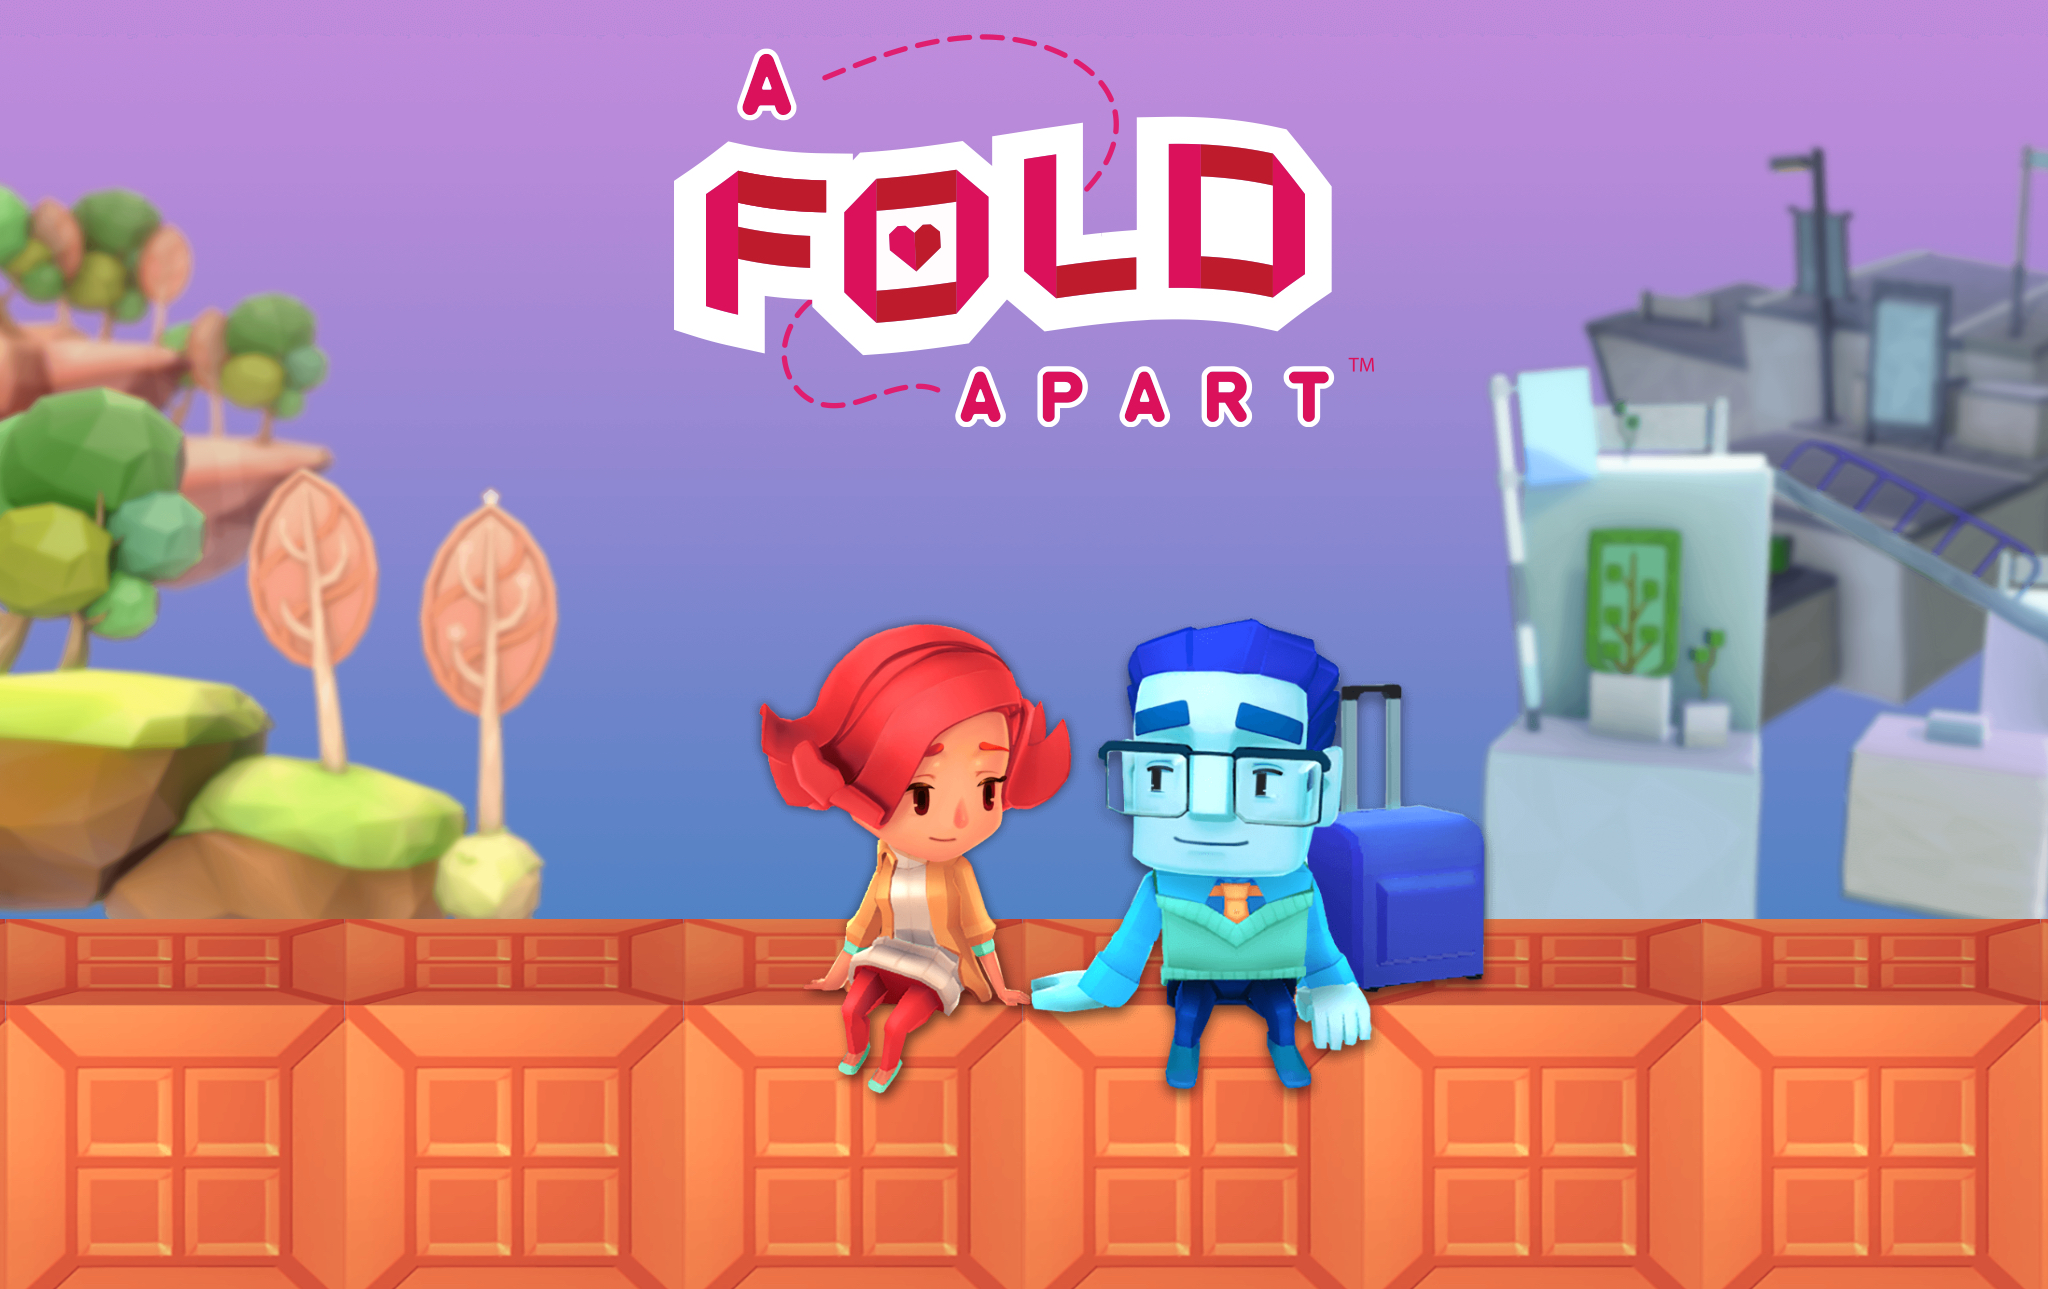 'A Fold Apart' from Lighting Rod Games Launches Next Week on Apple Arcade, Nintendo Switch, and PC